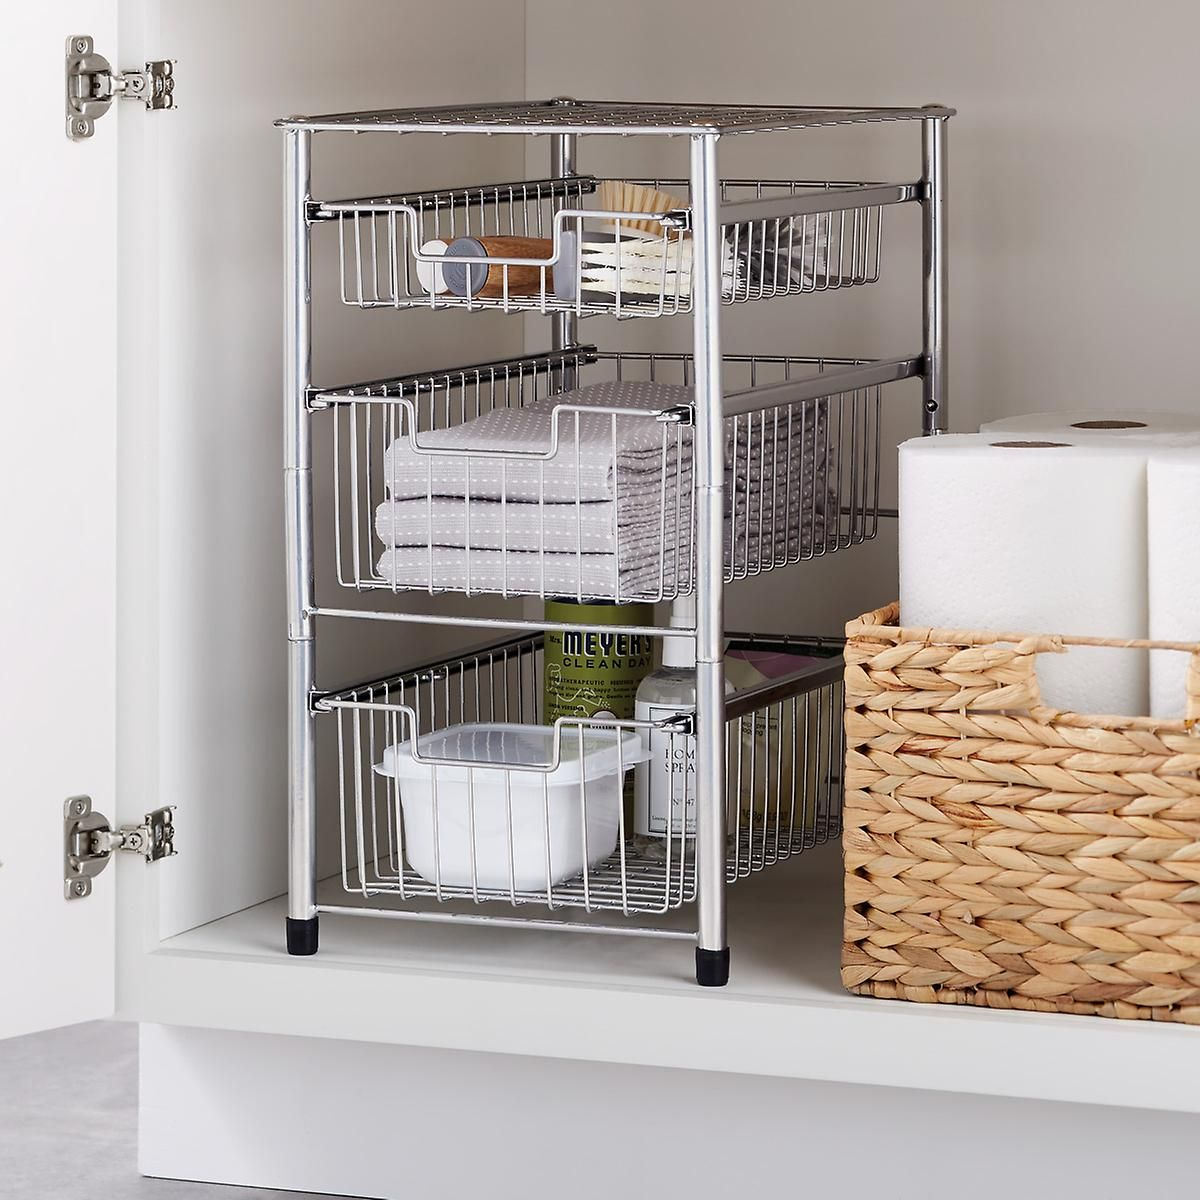 Wire Pull Out Cabinet Organizers Cabinets Organization Storage Cabinets Under Cabinet Storage [ 1200 x 1200 Pixel ]